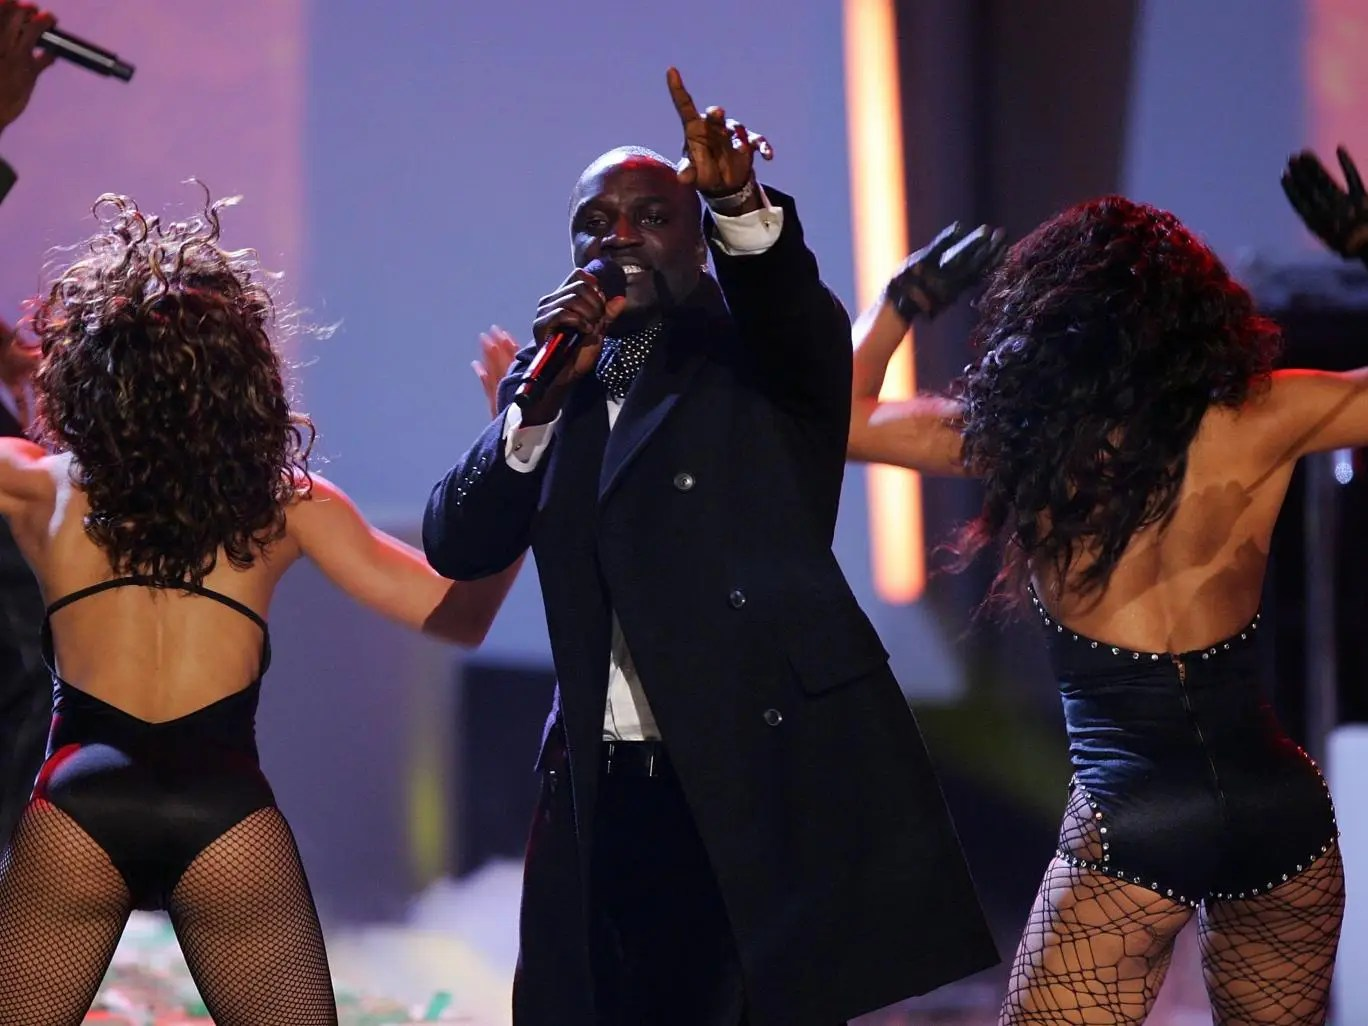 Akon set up the charity Akon Lighting Africa in 2014